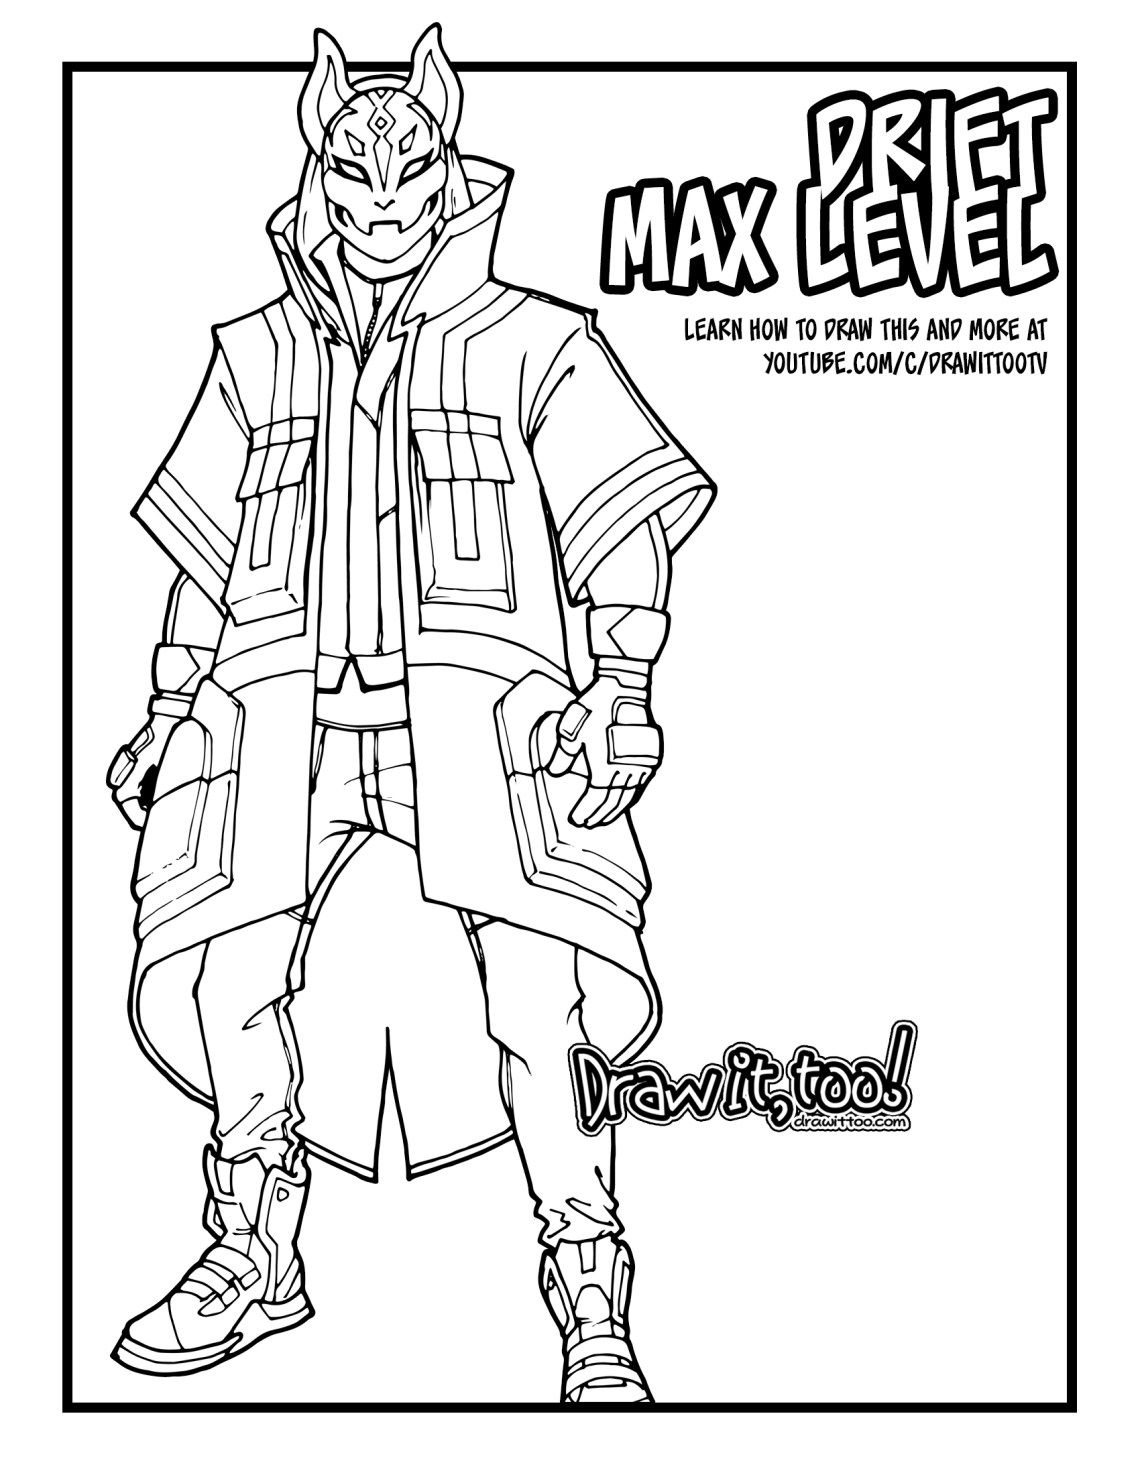 How To Draw Max Level Drift Fortnite Coloring Pages Coloring Pages Art Tutorials Drawing Coloring Books